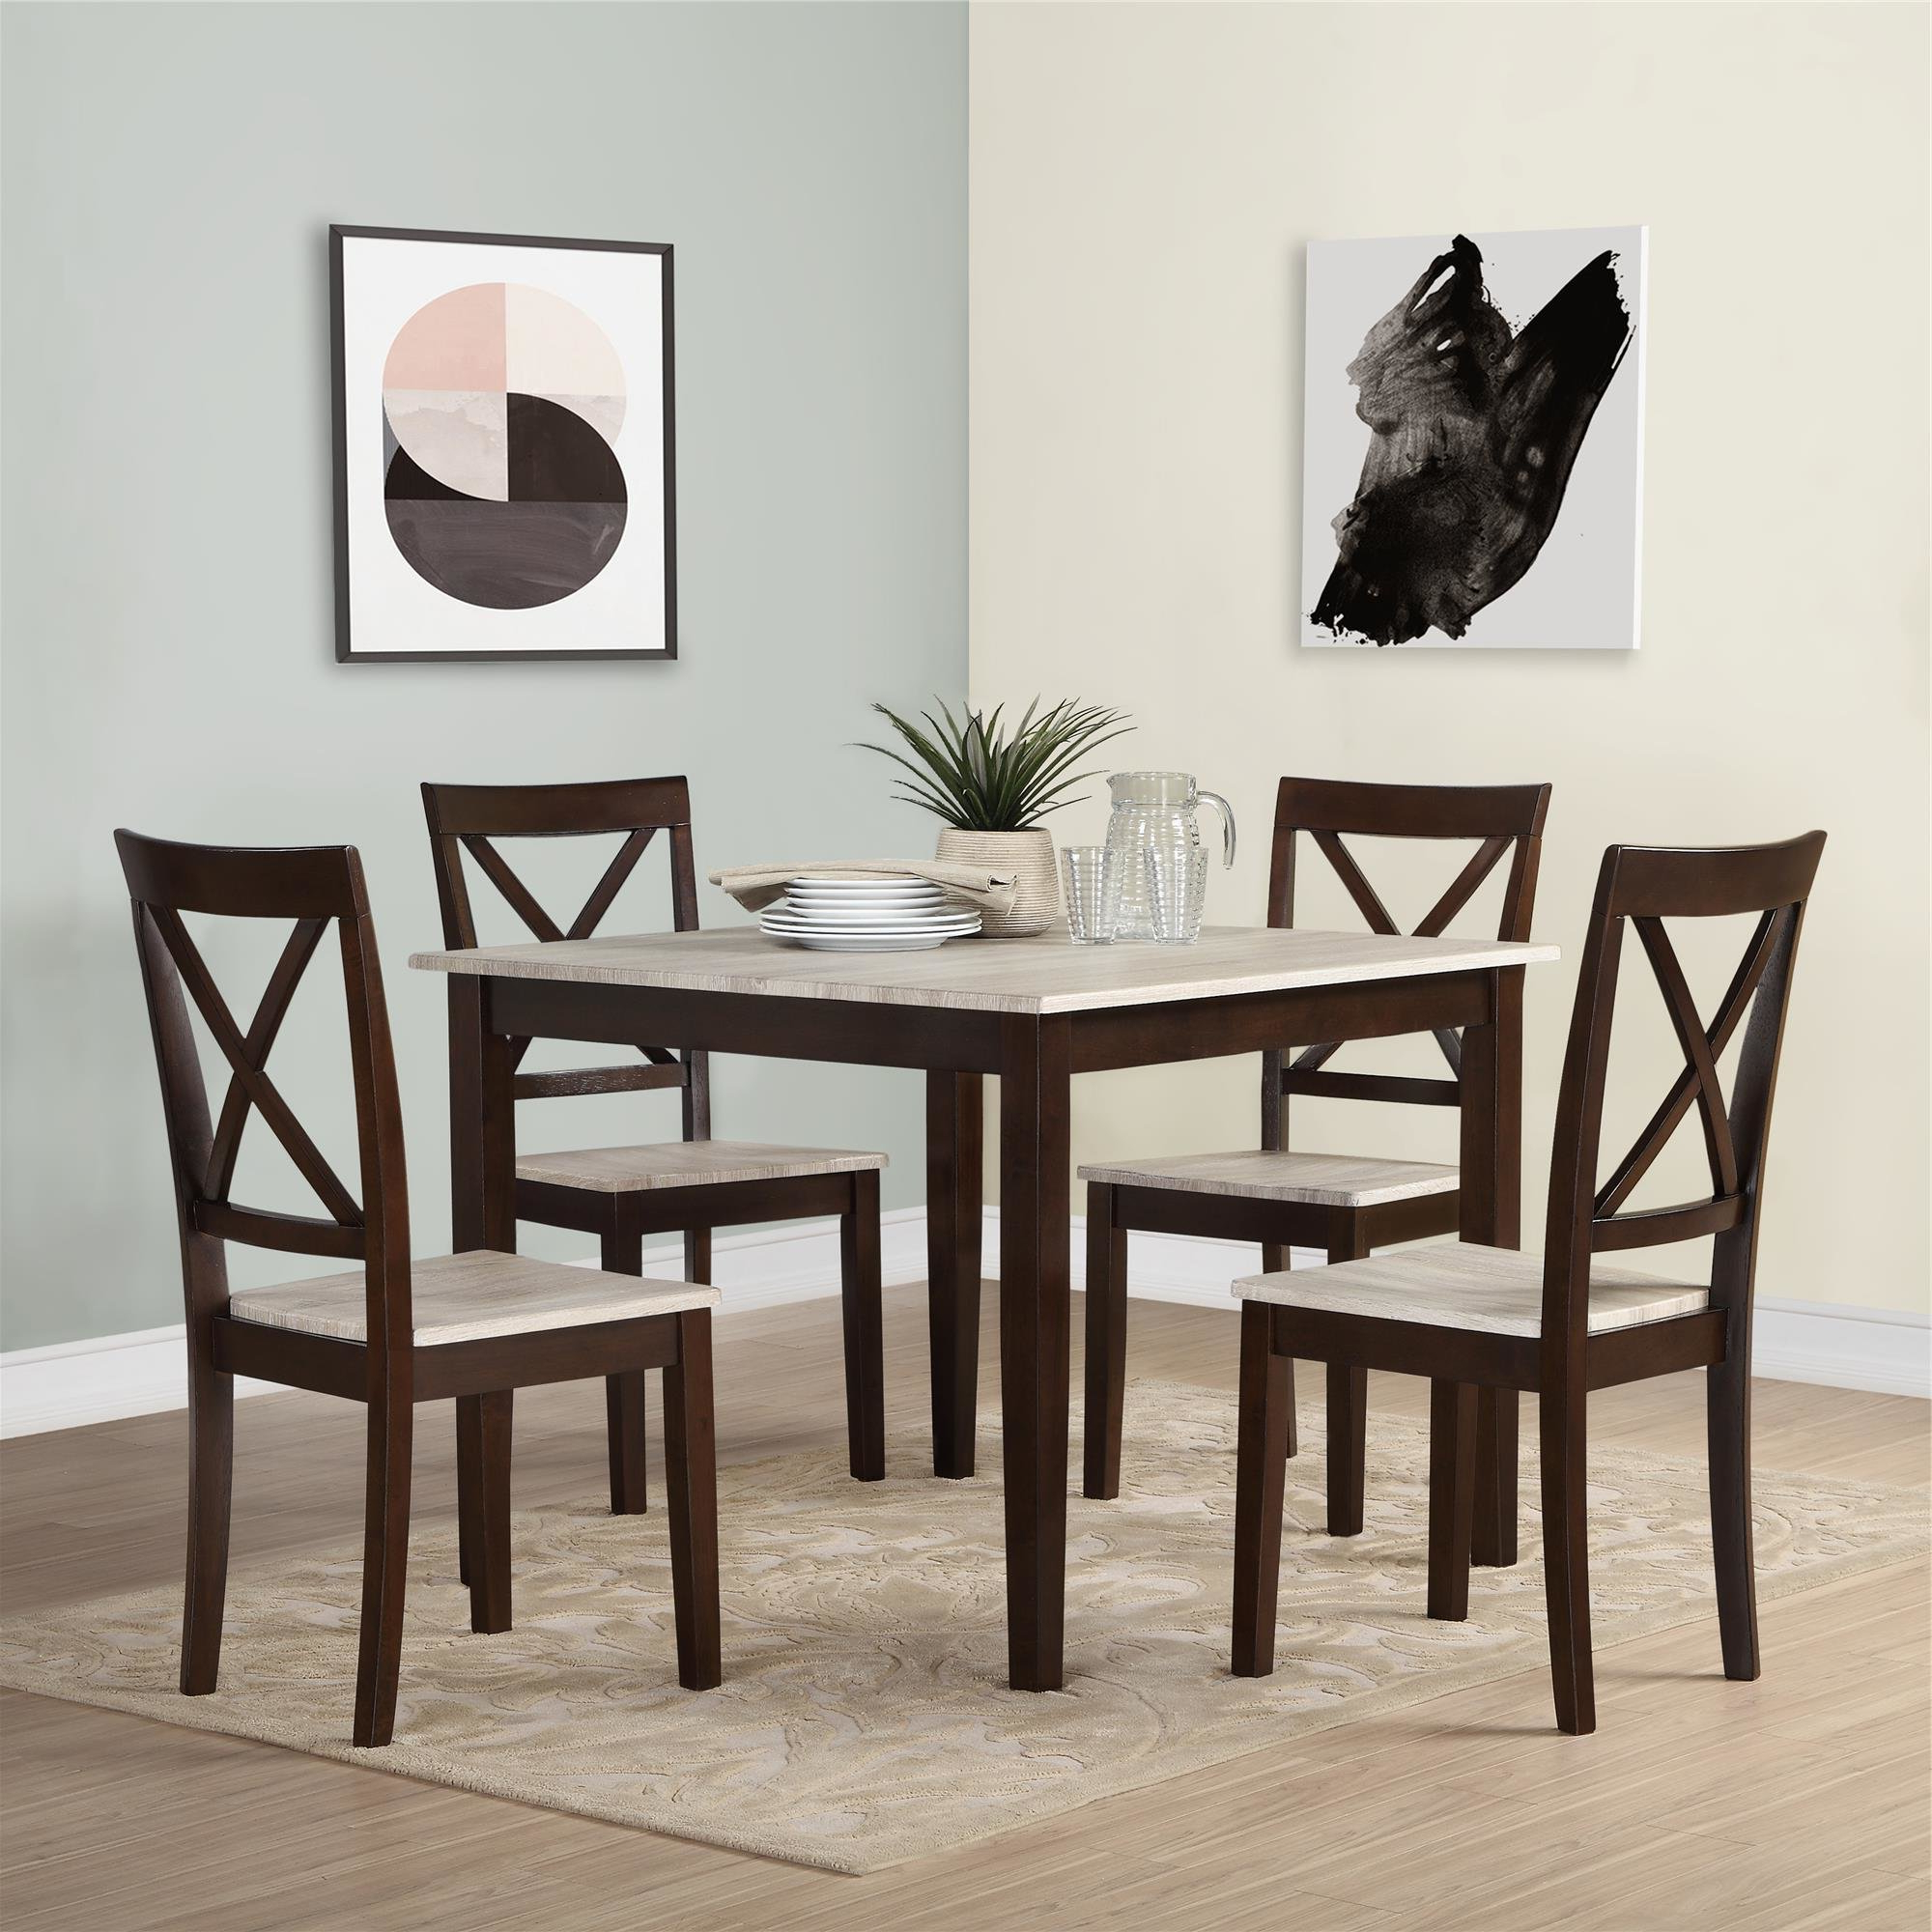 Baillie 3 Piece Dining Sets Throughout 2019 Tilley Rustic 5 Piece Dining Set & Reviews (View 13 of 25)